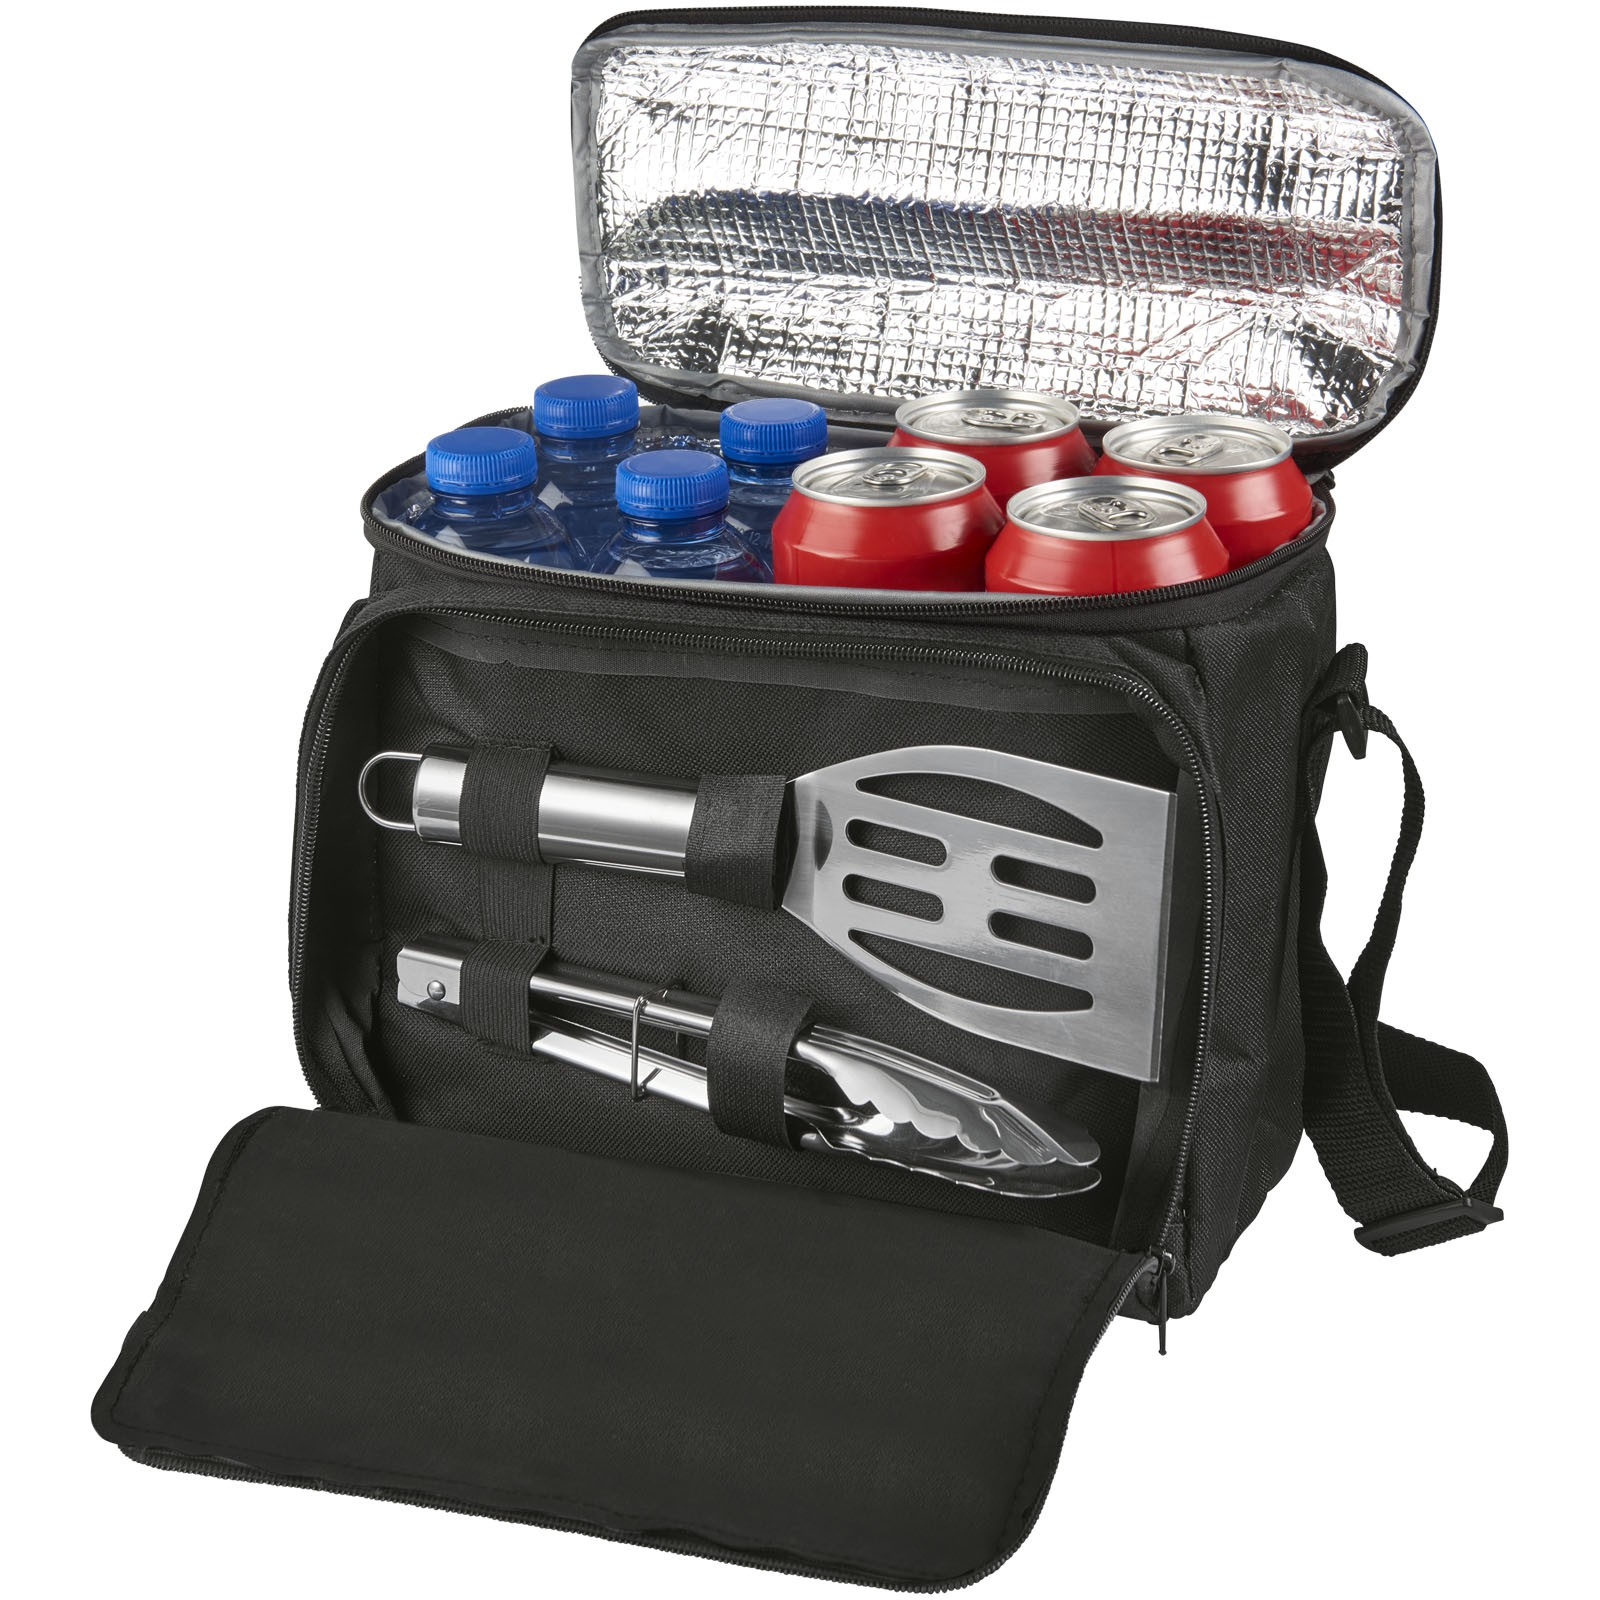 Mill 2 Piece Bbq Set With Cooler Bag Solid Black 25 X 14